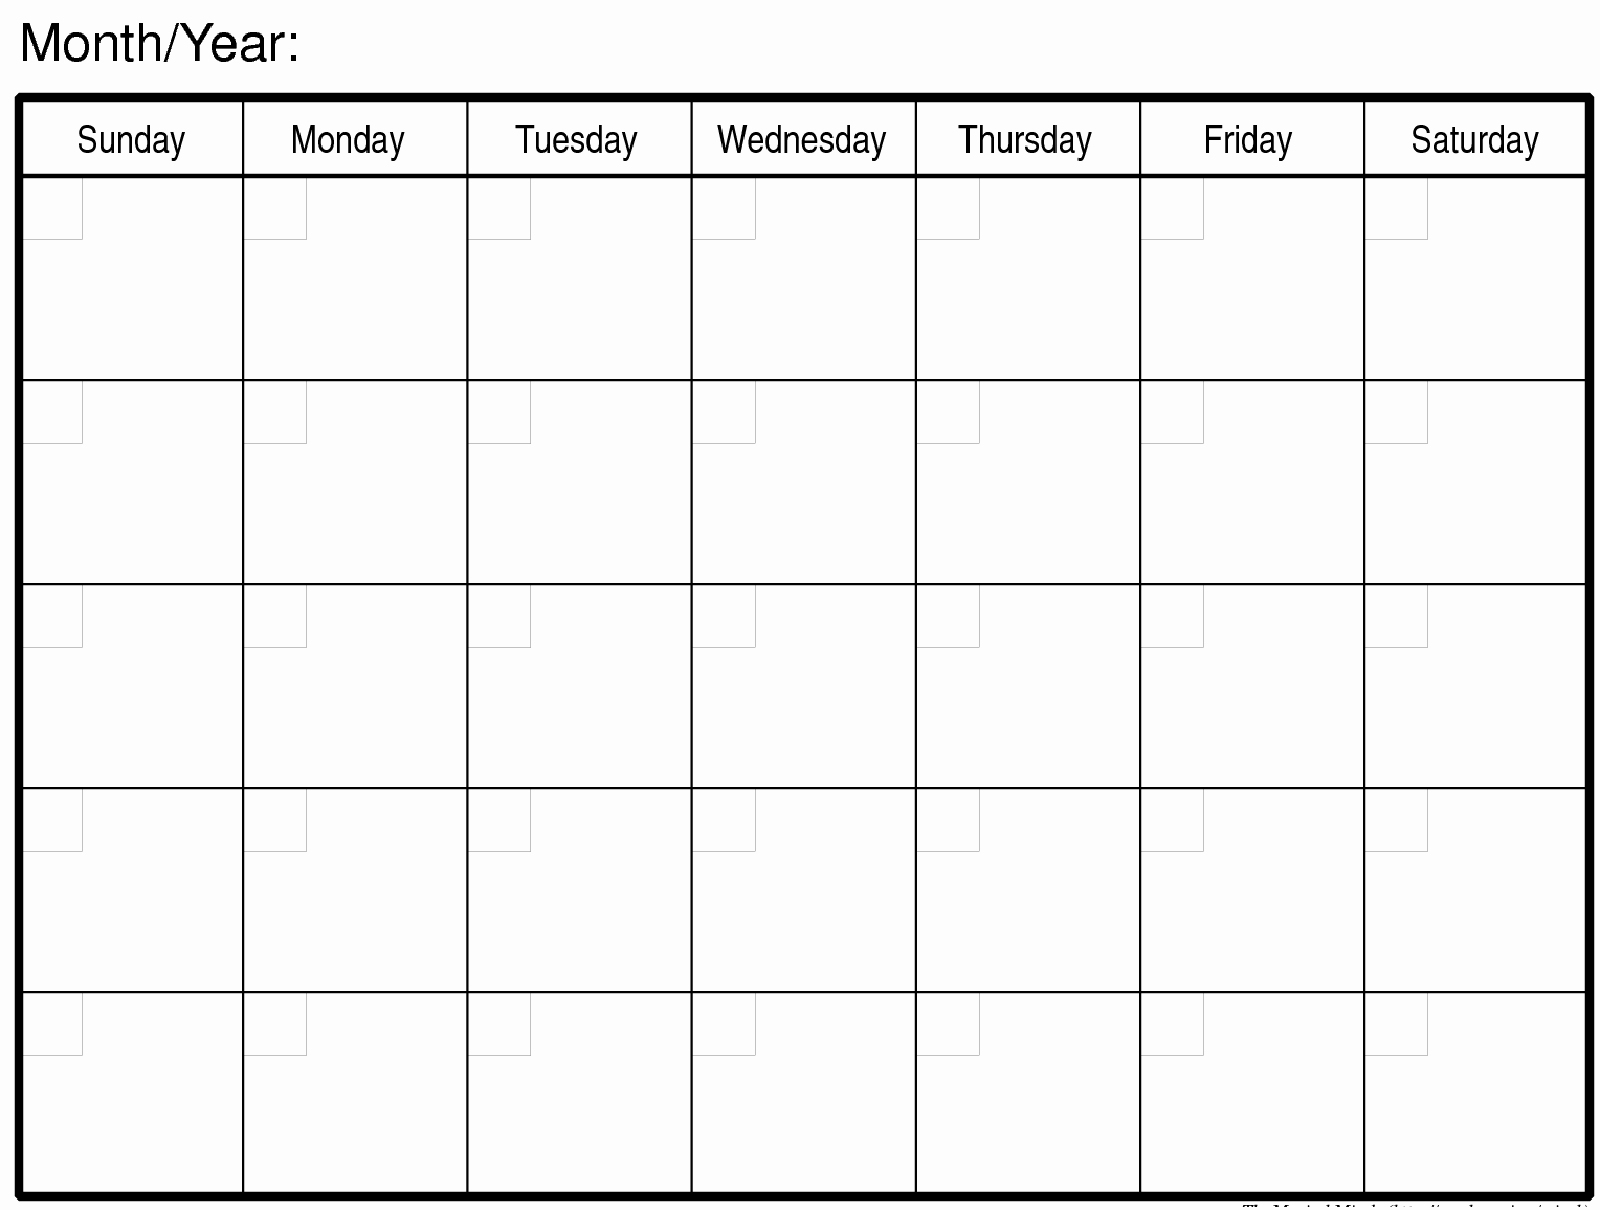 Blank Monthly Calendars To Print Free Calendar 2018 Printable_Free Calendar Blanks To Print